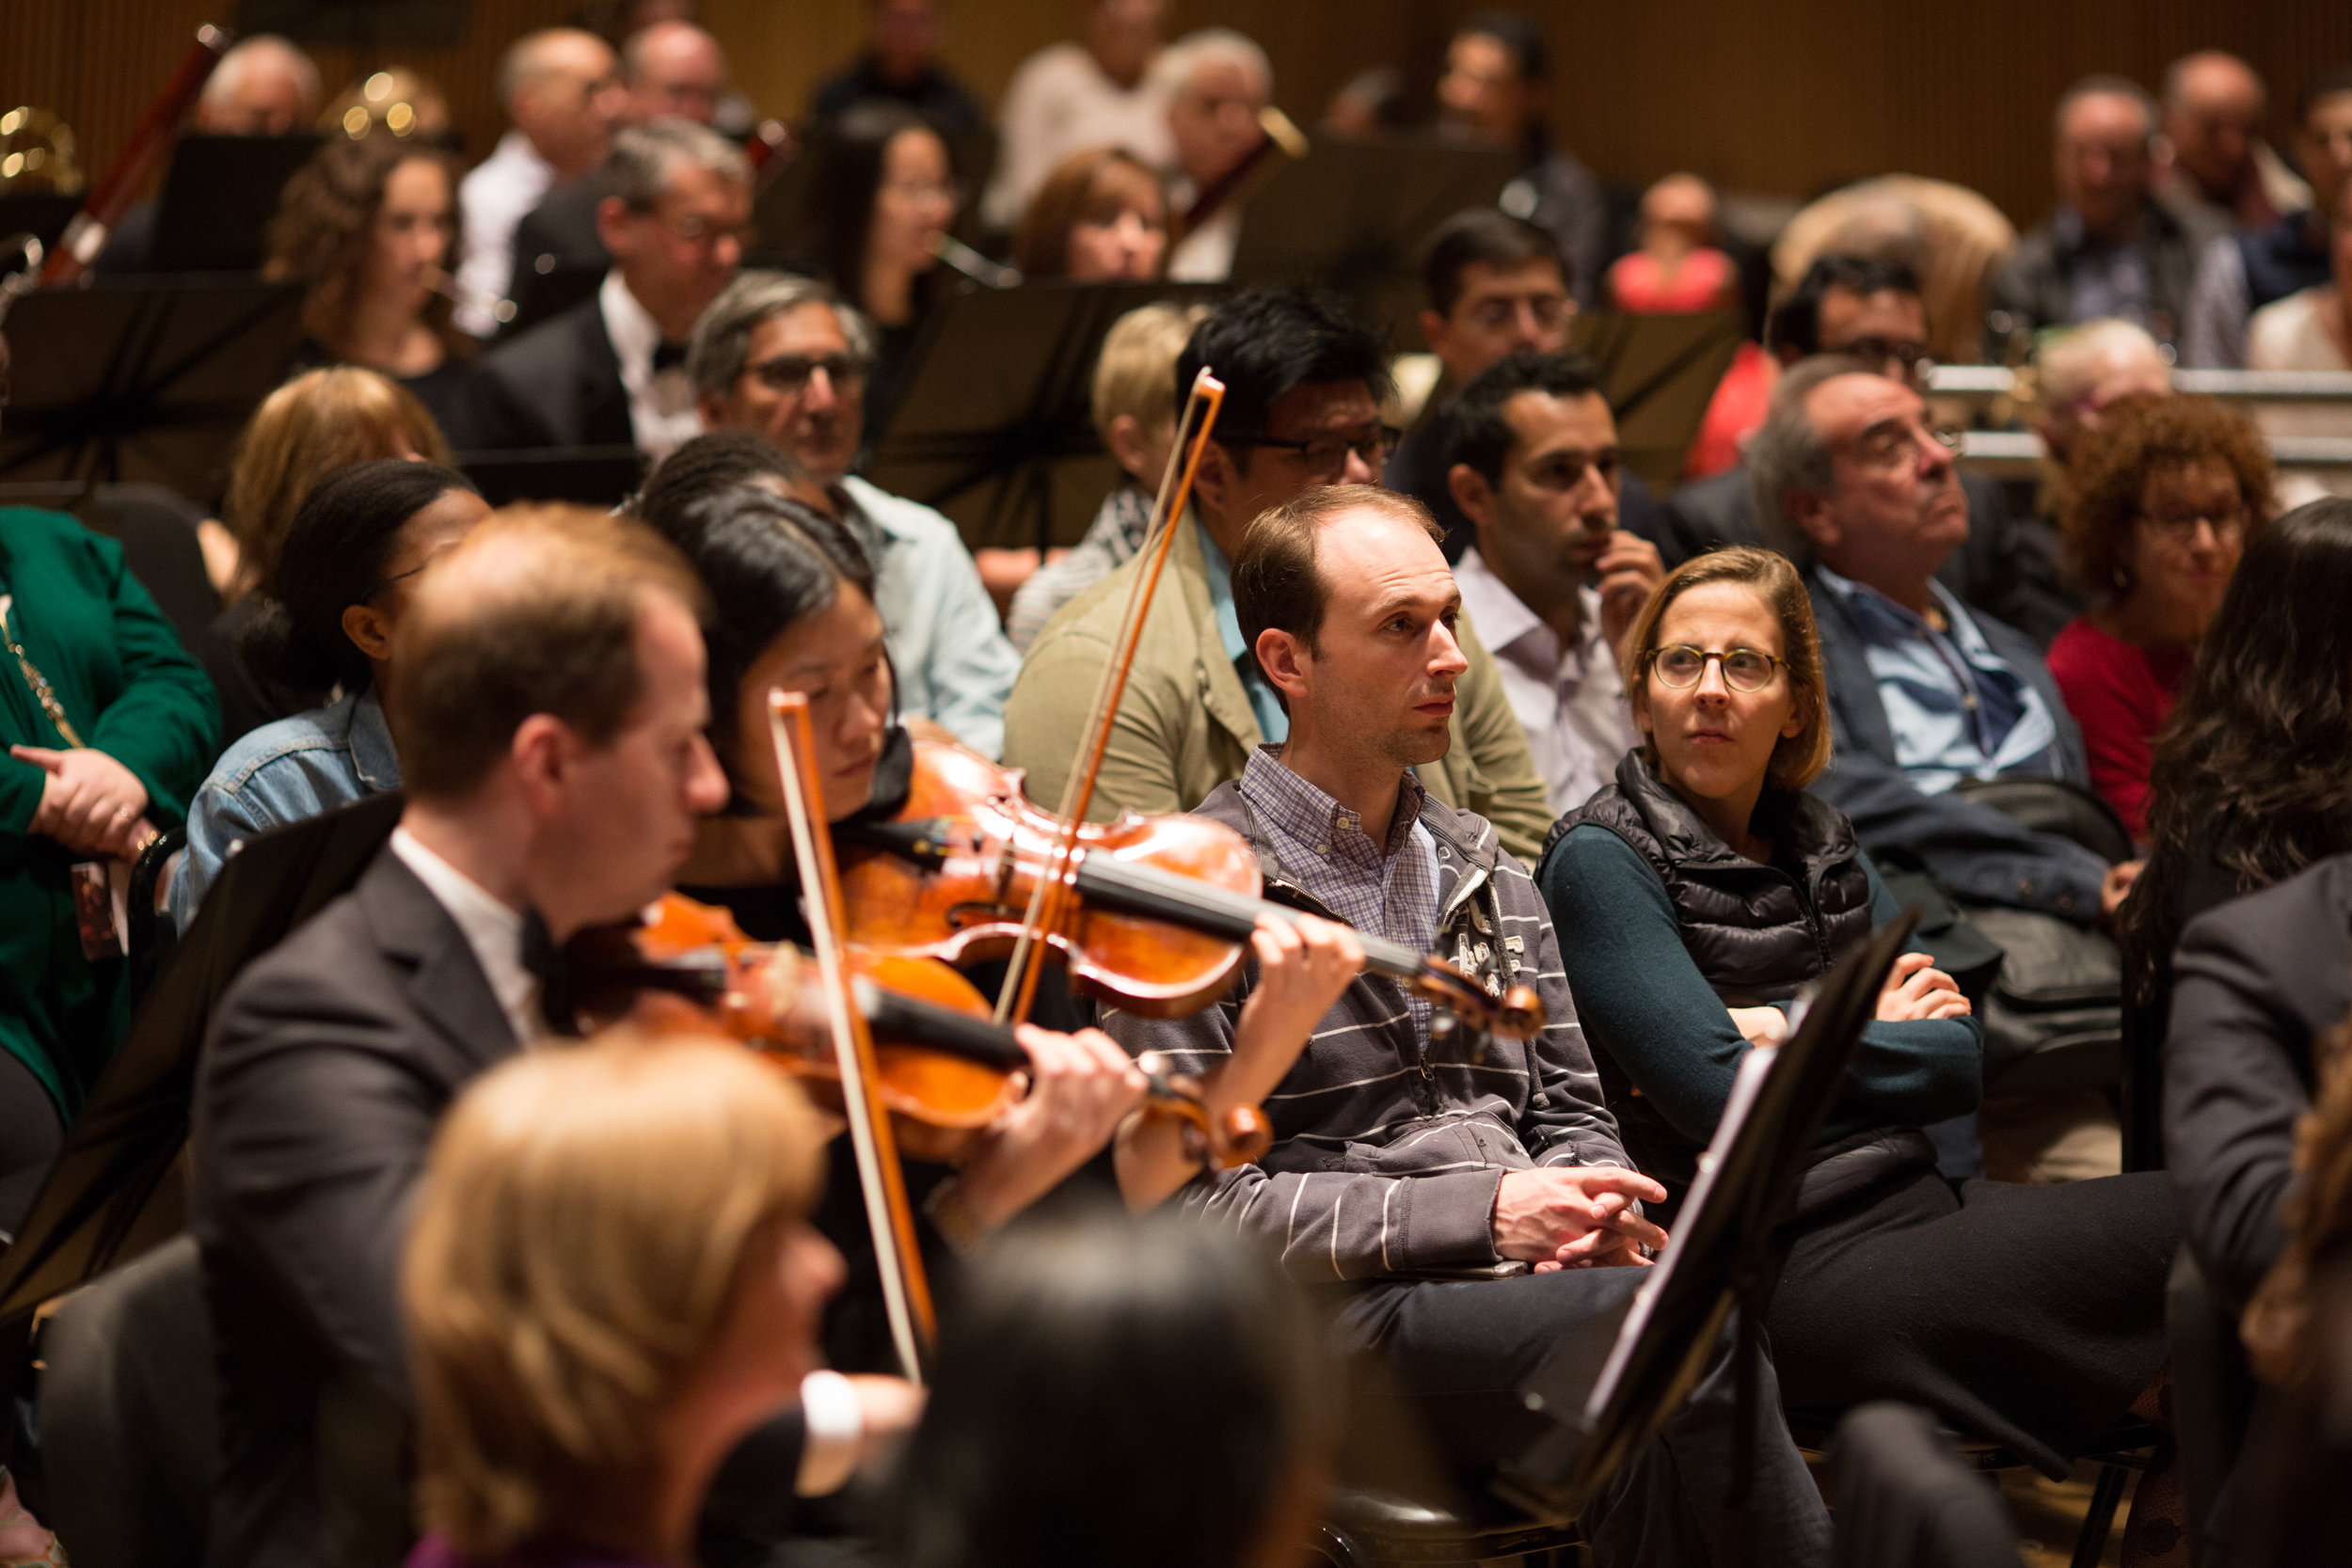 The Park Avenue Chamber Symphony's collaboration with InsideOut Concerts, Inc. brings audience members inside the orchestra allowing them to see, feel and hear the music making in a fully immersive experience.